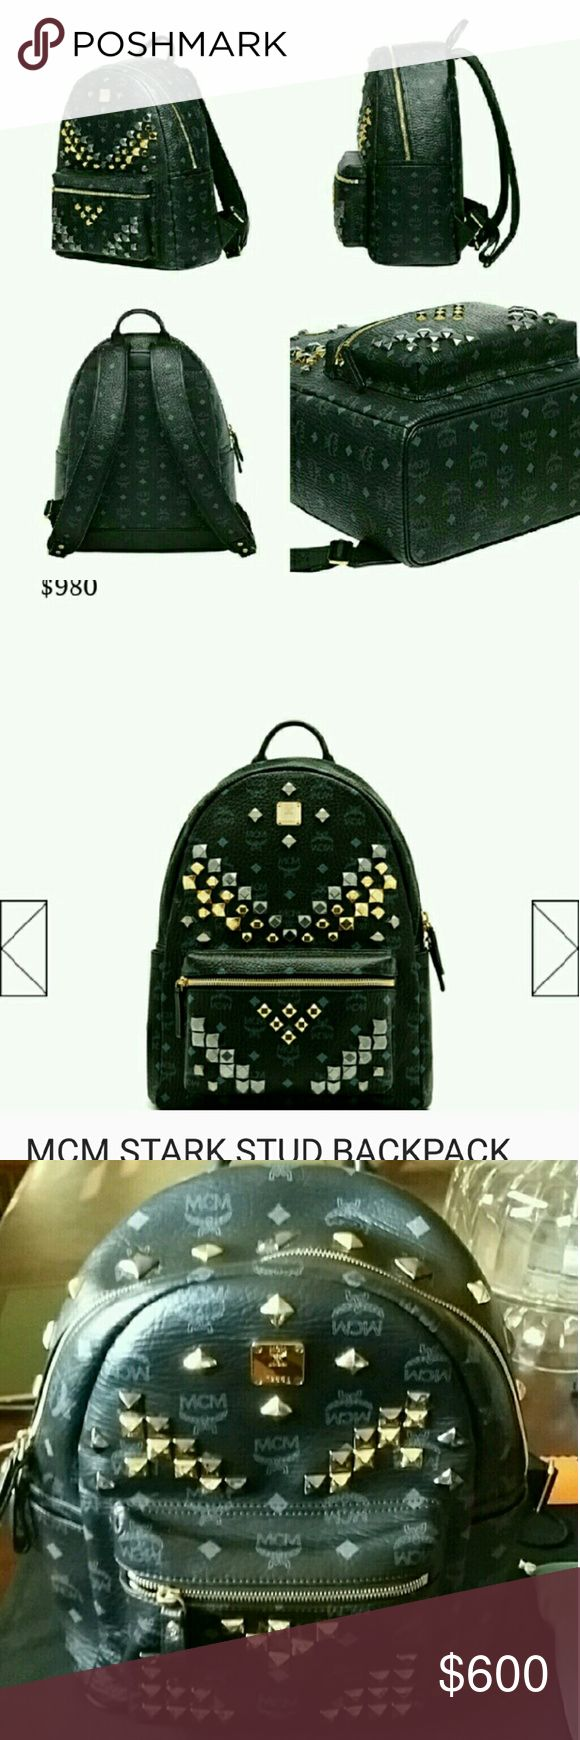 MCM STARK M STUDDED BACK PACK Preloved like new condition 100% Authentic Unisex Price is firm  No holds no trades no lowest  BUY WITH CONFIDENCE POSH WILL CHECK AUTHENTICITY BEFORE IT IS DELIVERED TO YOU:-) IF YOU DO NOT HAVE RATINGS DO NOT PURCHASE I WILL CANCEL ORDER !! Stark Backpack in Visetos coated canvas with leather trim Color: Black Single top handle Adjustable shoulder straps Mixed stud embellishment Zip-around closure Front zip 2 side flat pockets 2 interior pockets with padded…